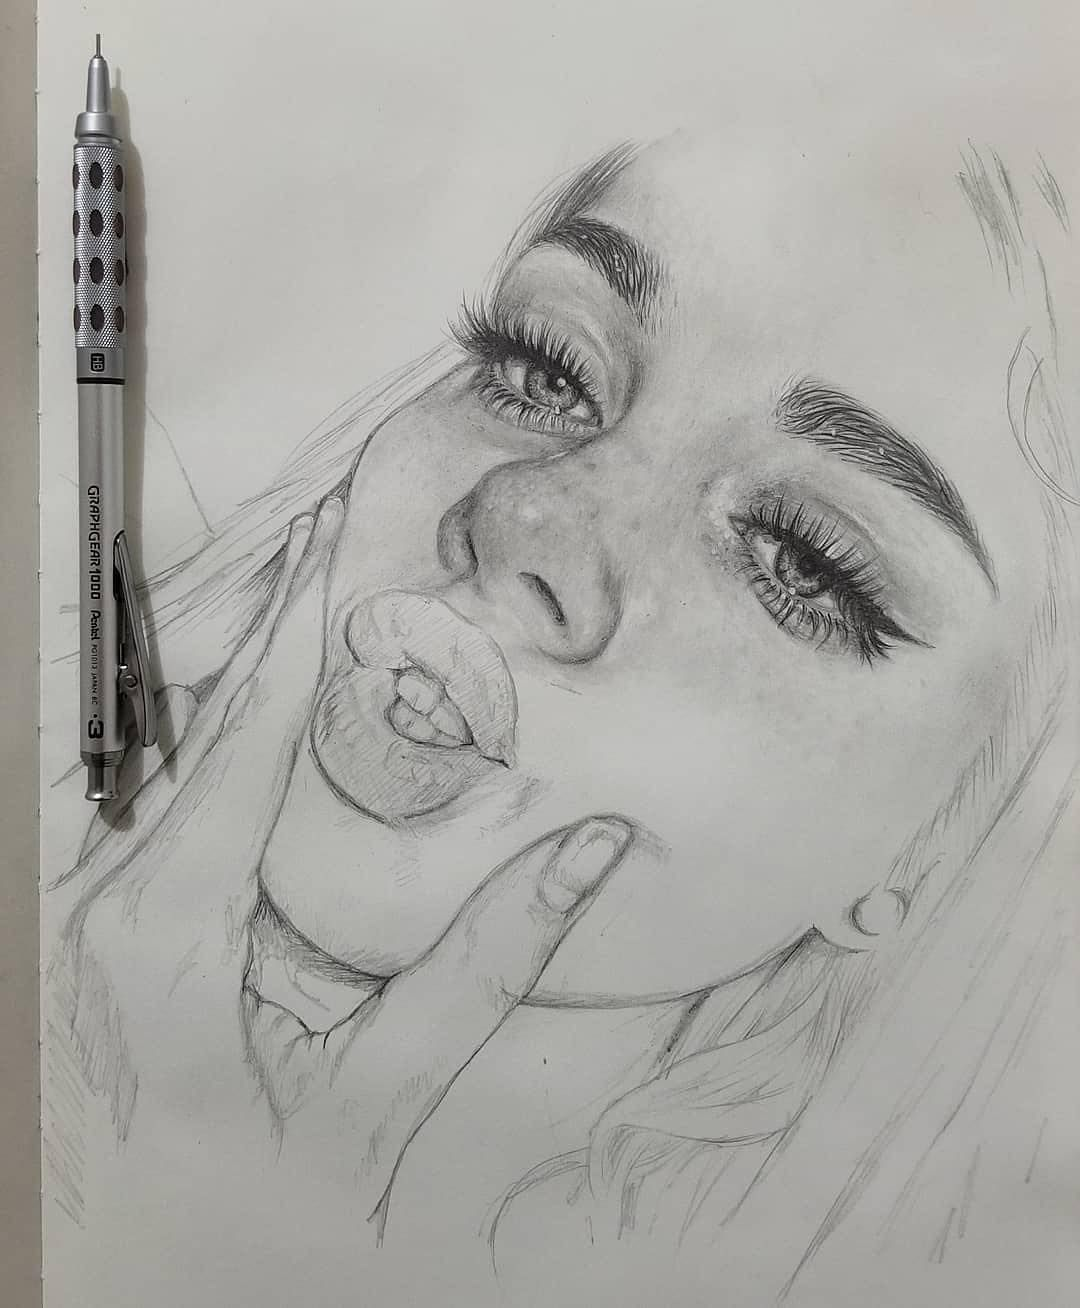 "Yuriy Strigul on Instagram: ""#pencil ✏️ sketch portrait of Kiera Johnston @kierajohnston_ drawn by Ronald Restituyo @ronaldrestituyo artist from Dominican Republic 🇩🇴"""